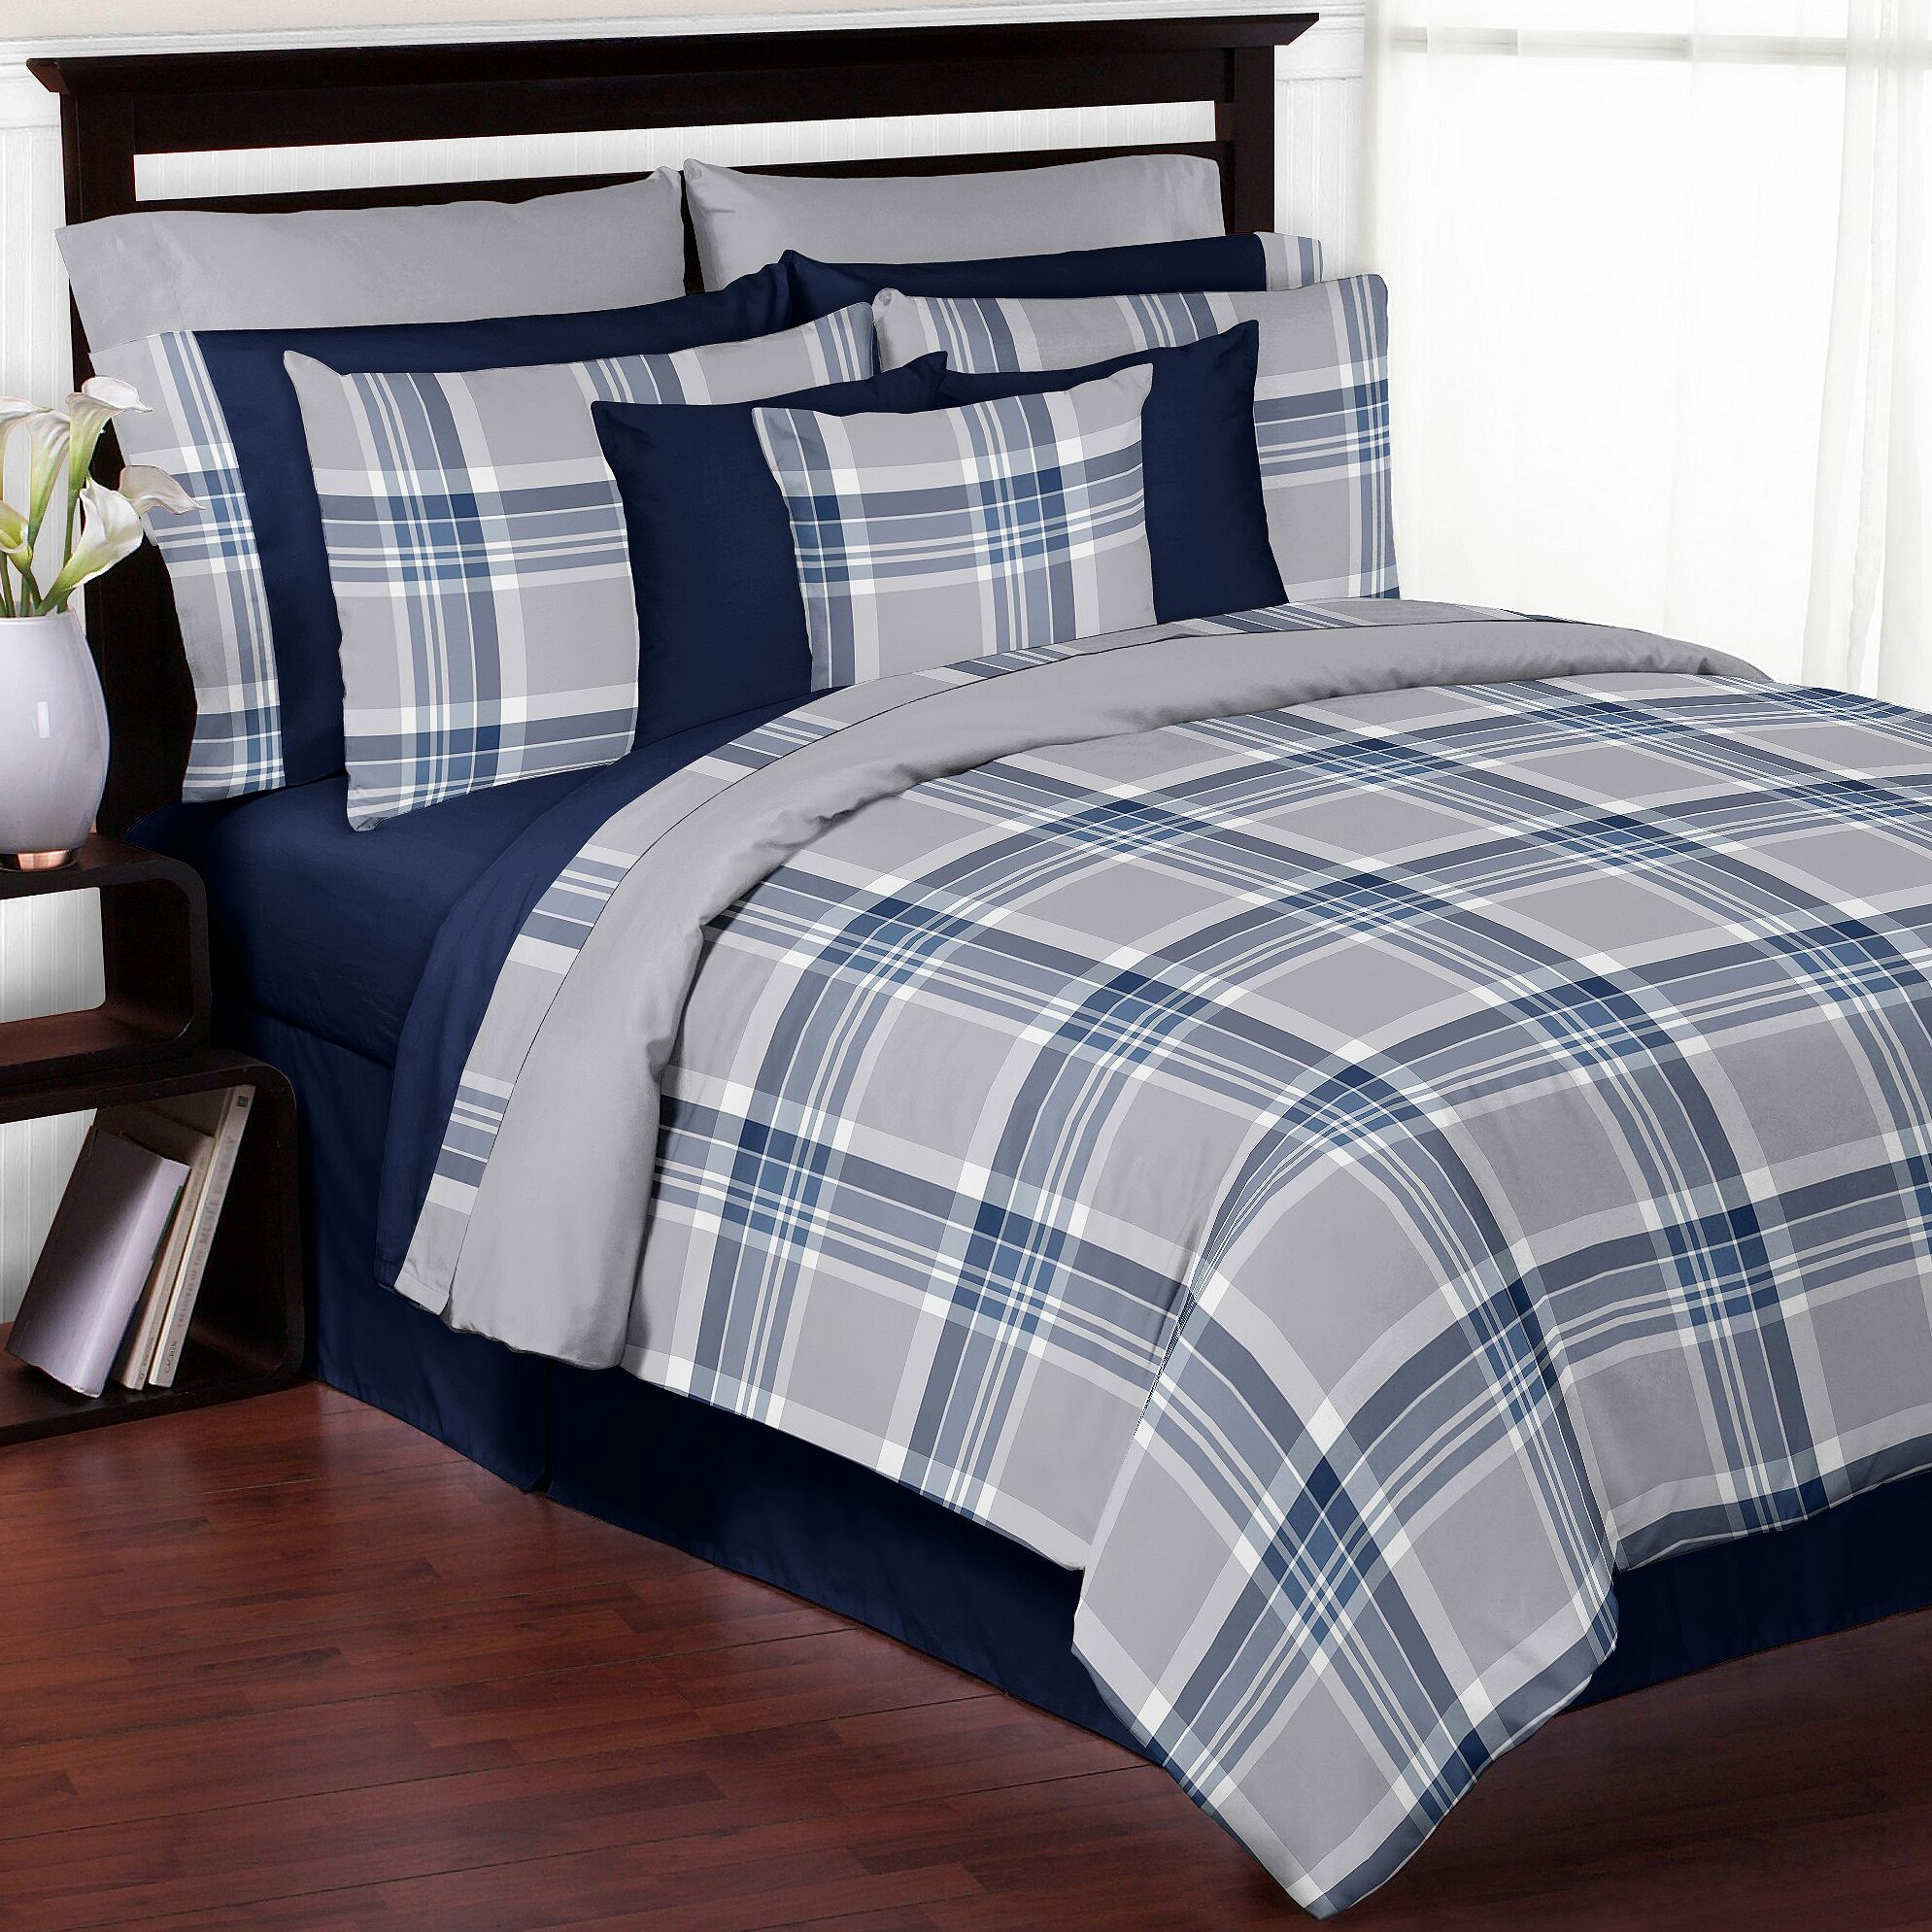 Sweet Jojo Designs Plaid Comforter Set & Reviews | Wayfair